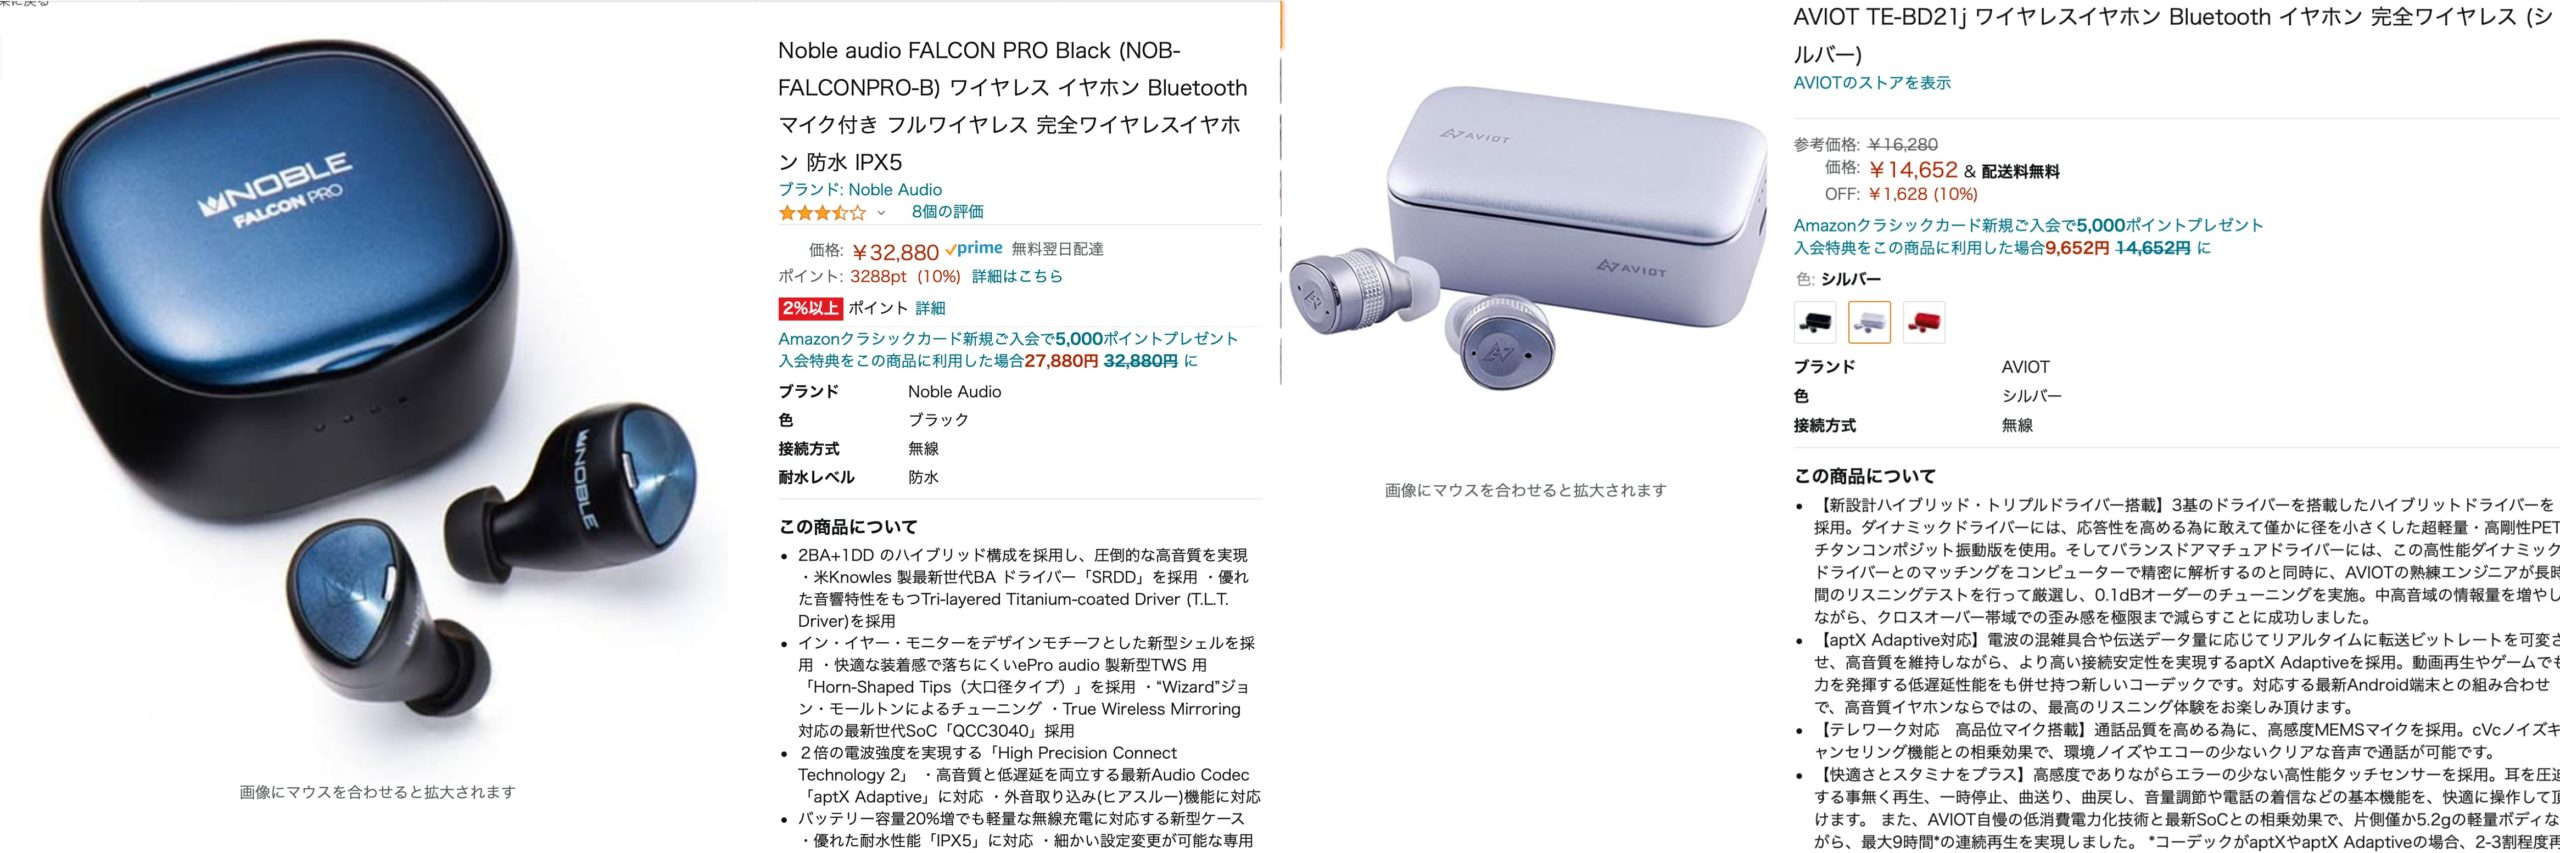 Noble Audio FALCON Pro AVIOT TE-BD21j